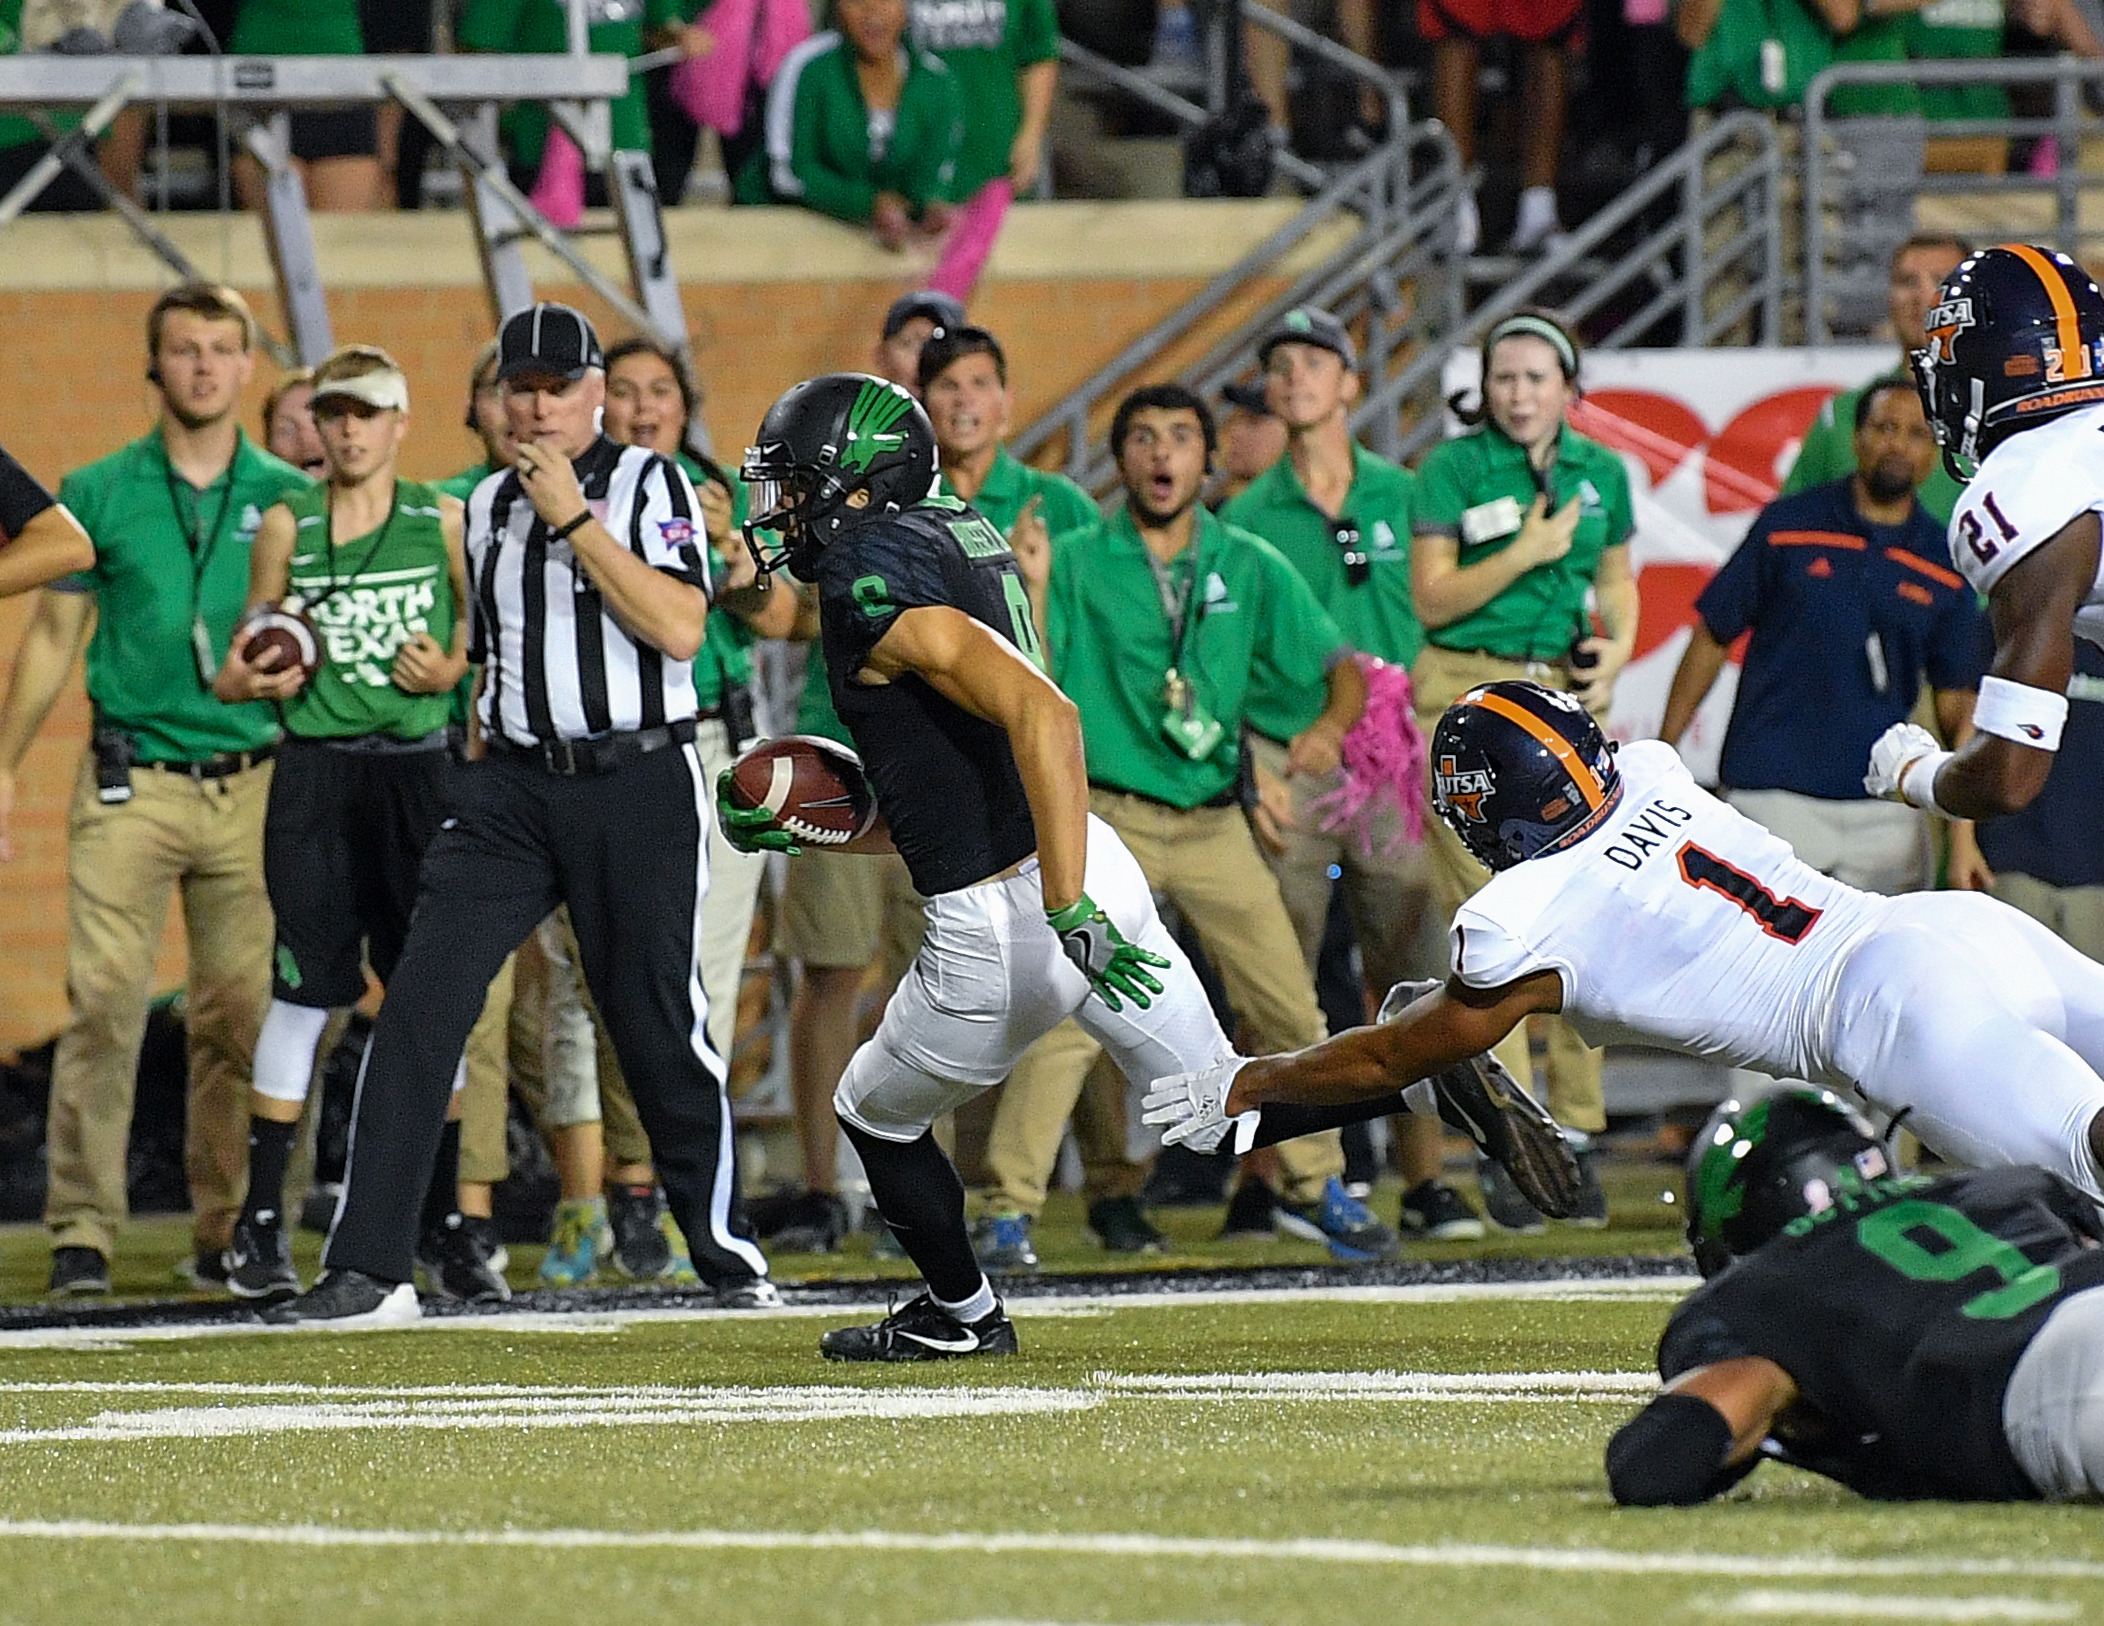 Rico Bussey, Jr., eludes a UTSA defender to score the game-winning touchdown Saturday at Apogee Stadium (photo by Manny Flores, Rick Yeatts photography)